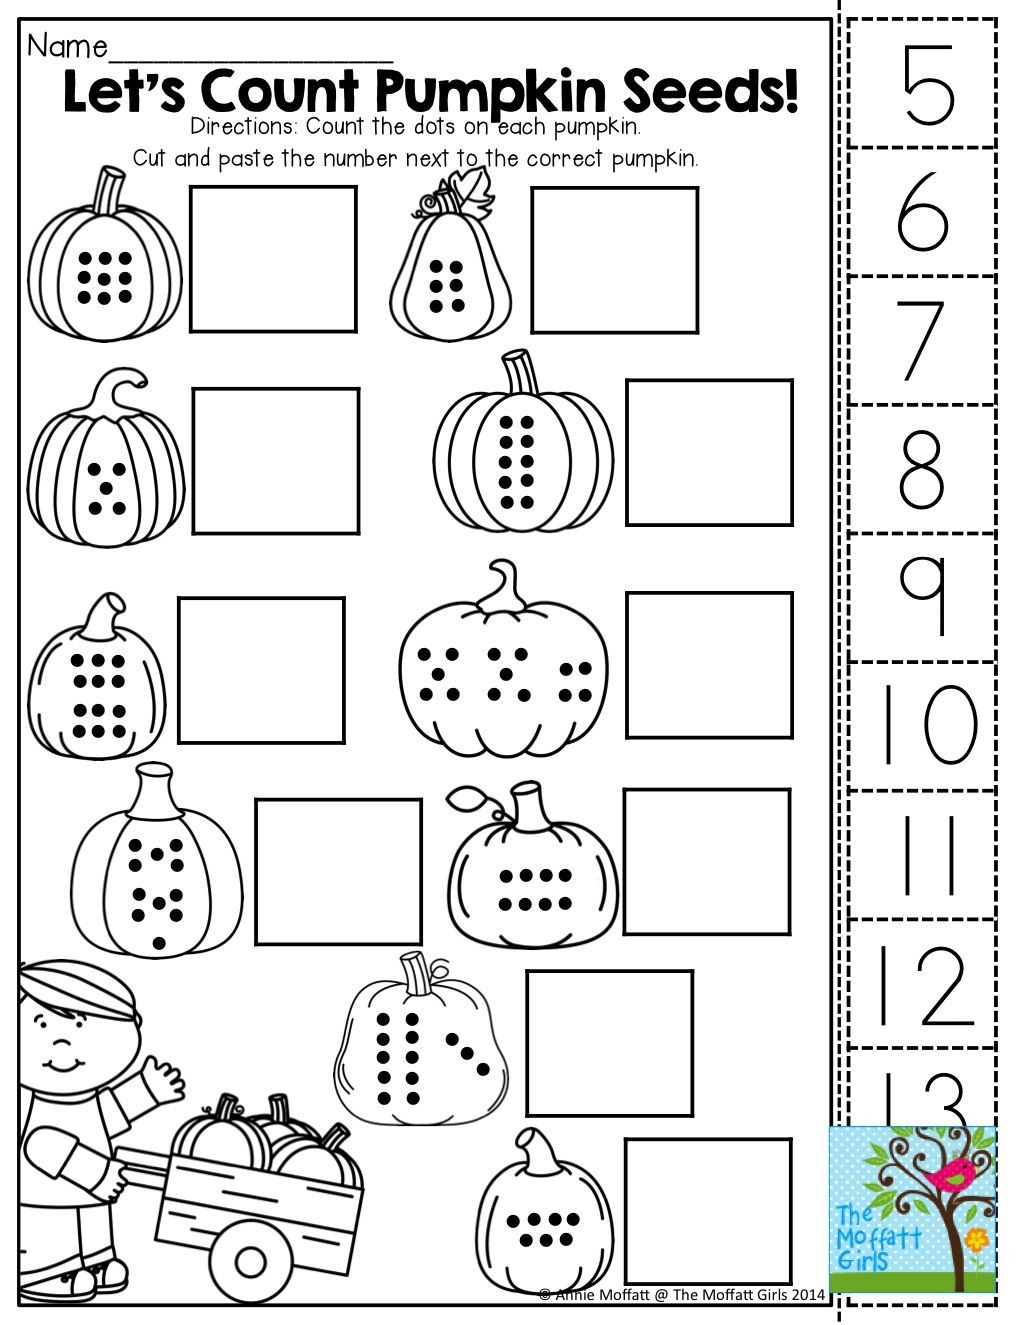 Cut and Paste Math Worksheets October Fun Filled Learning Resources